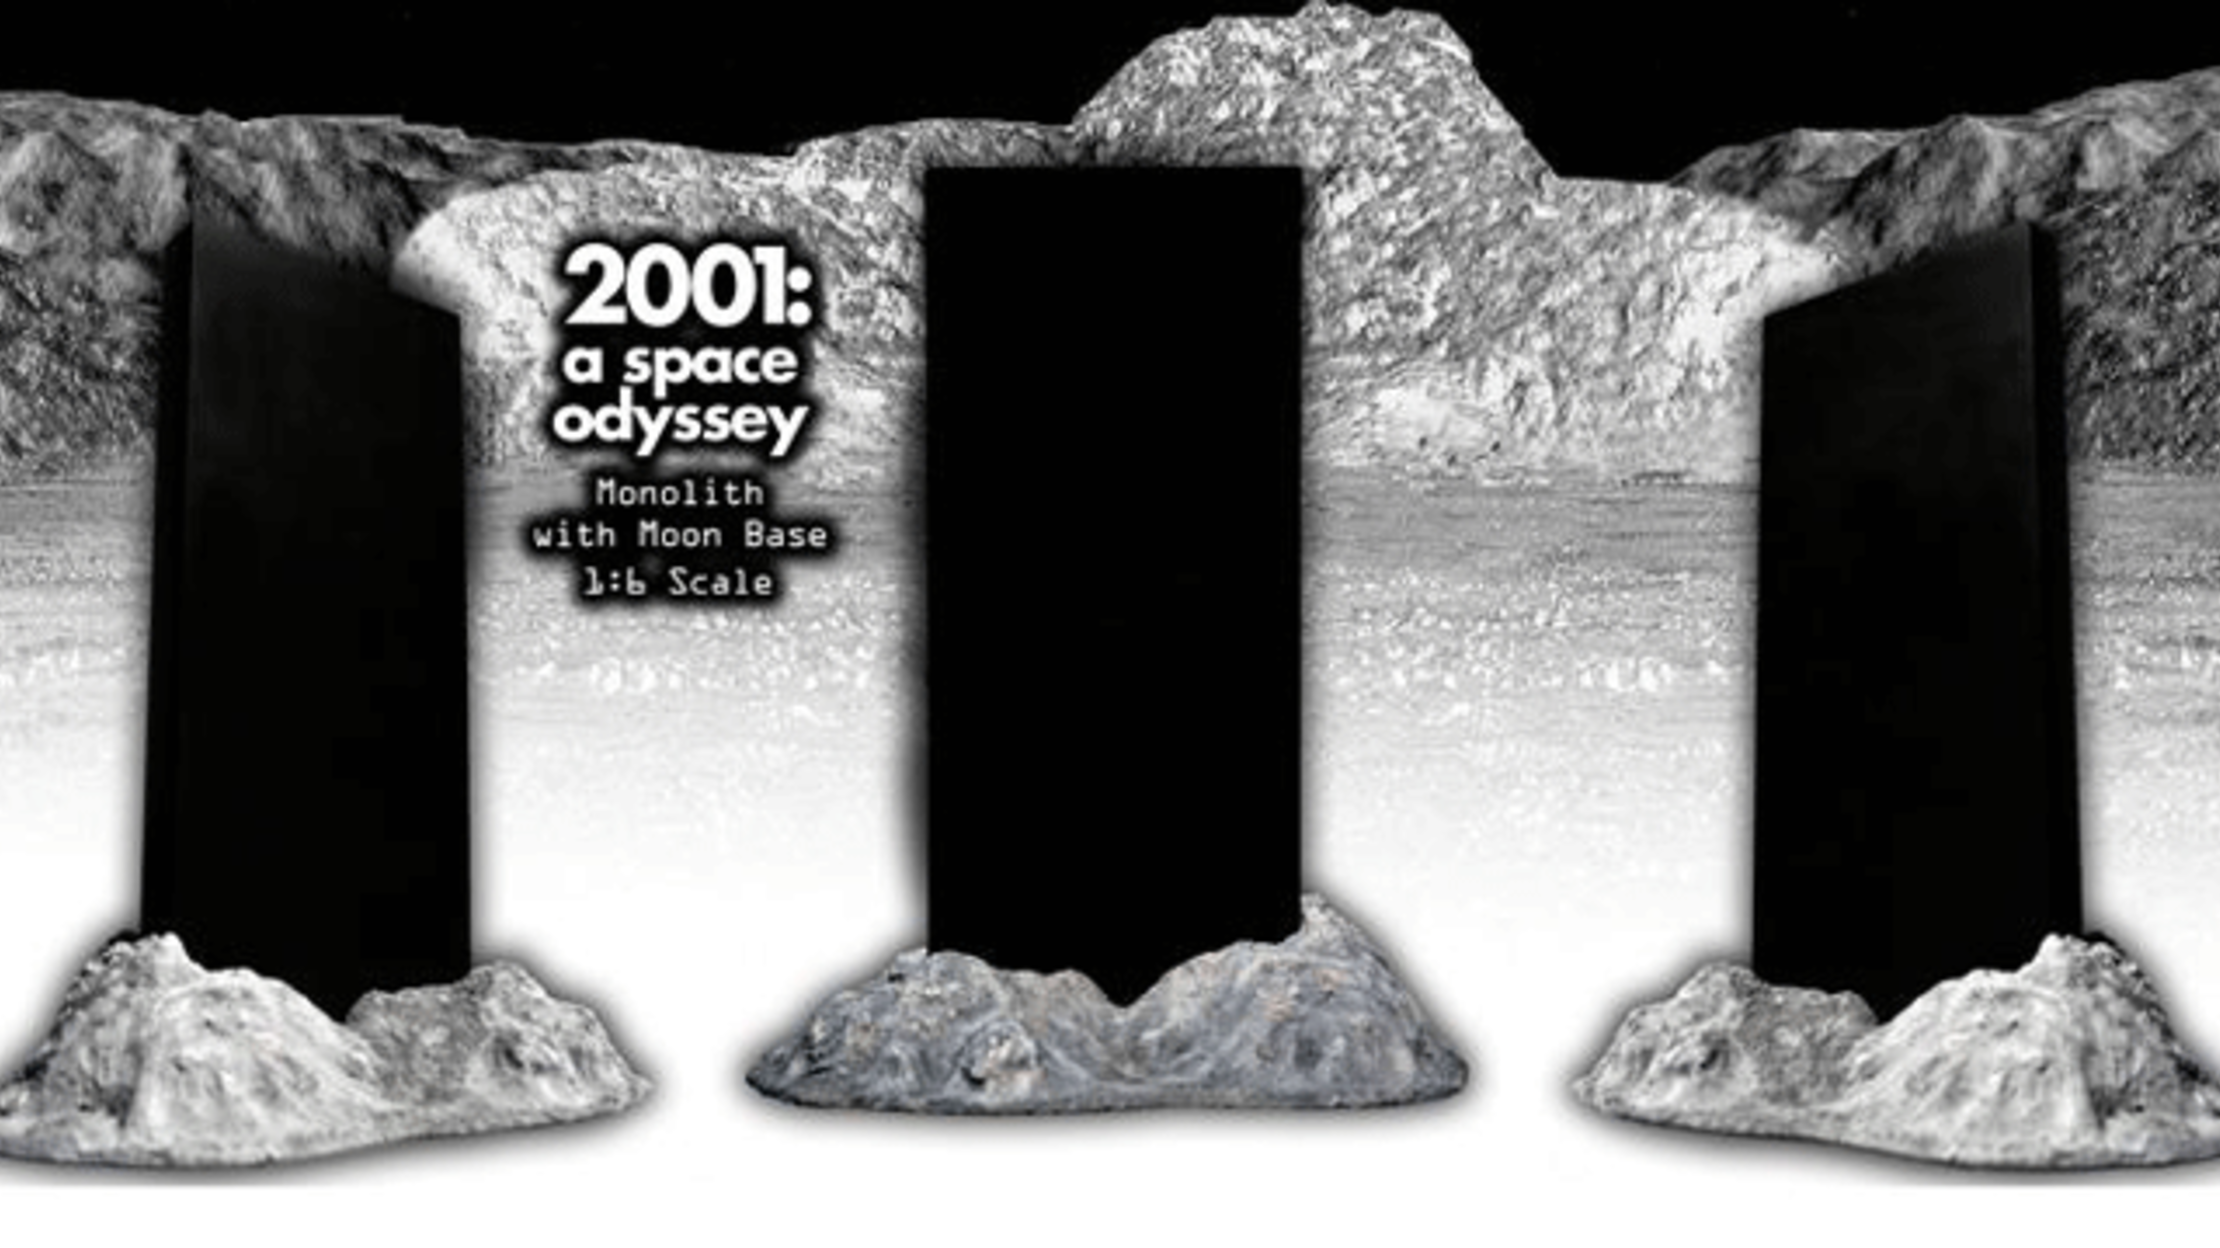 you can now buy a scaled down monolith from 2001 a space odyssey mental floss 2001 a space odyssey mental floss